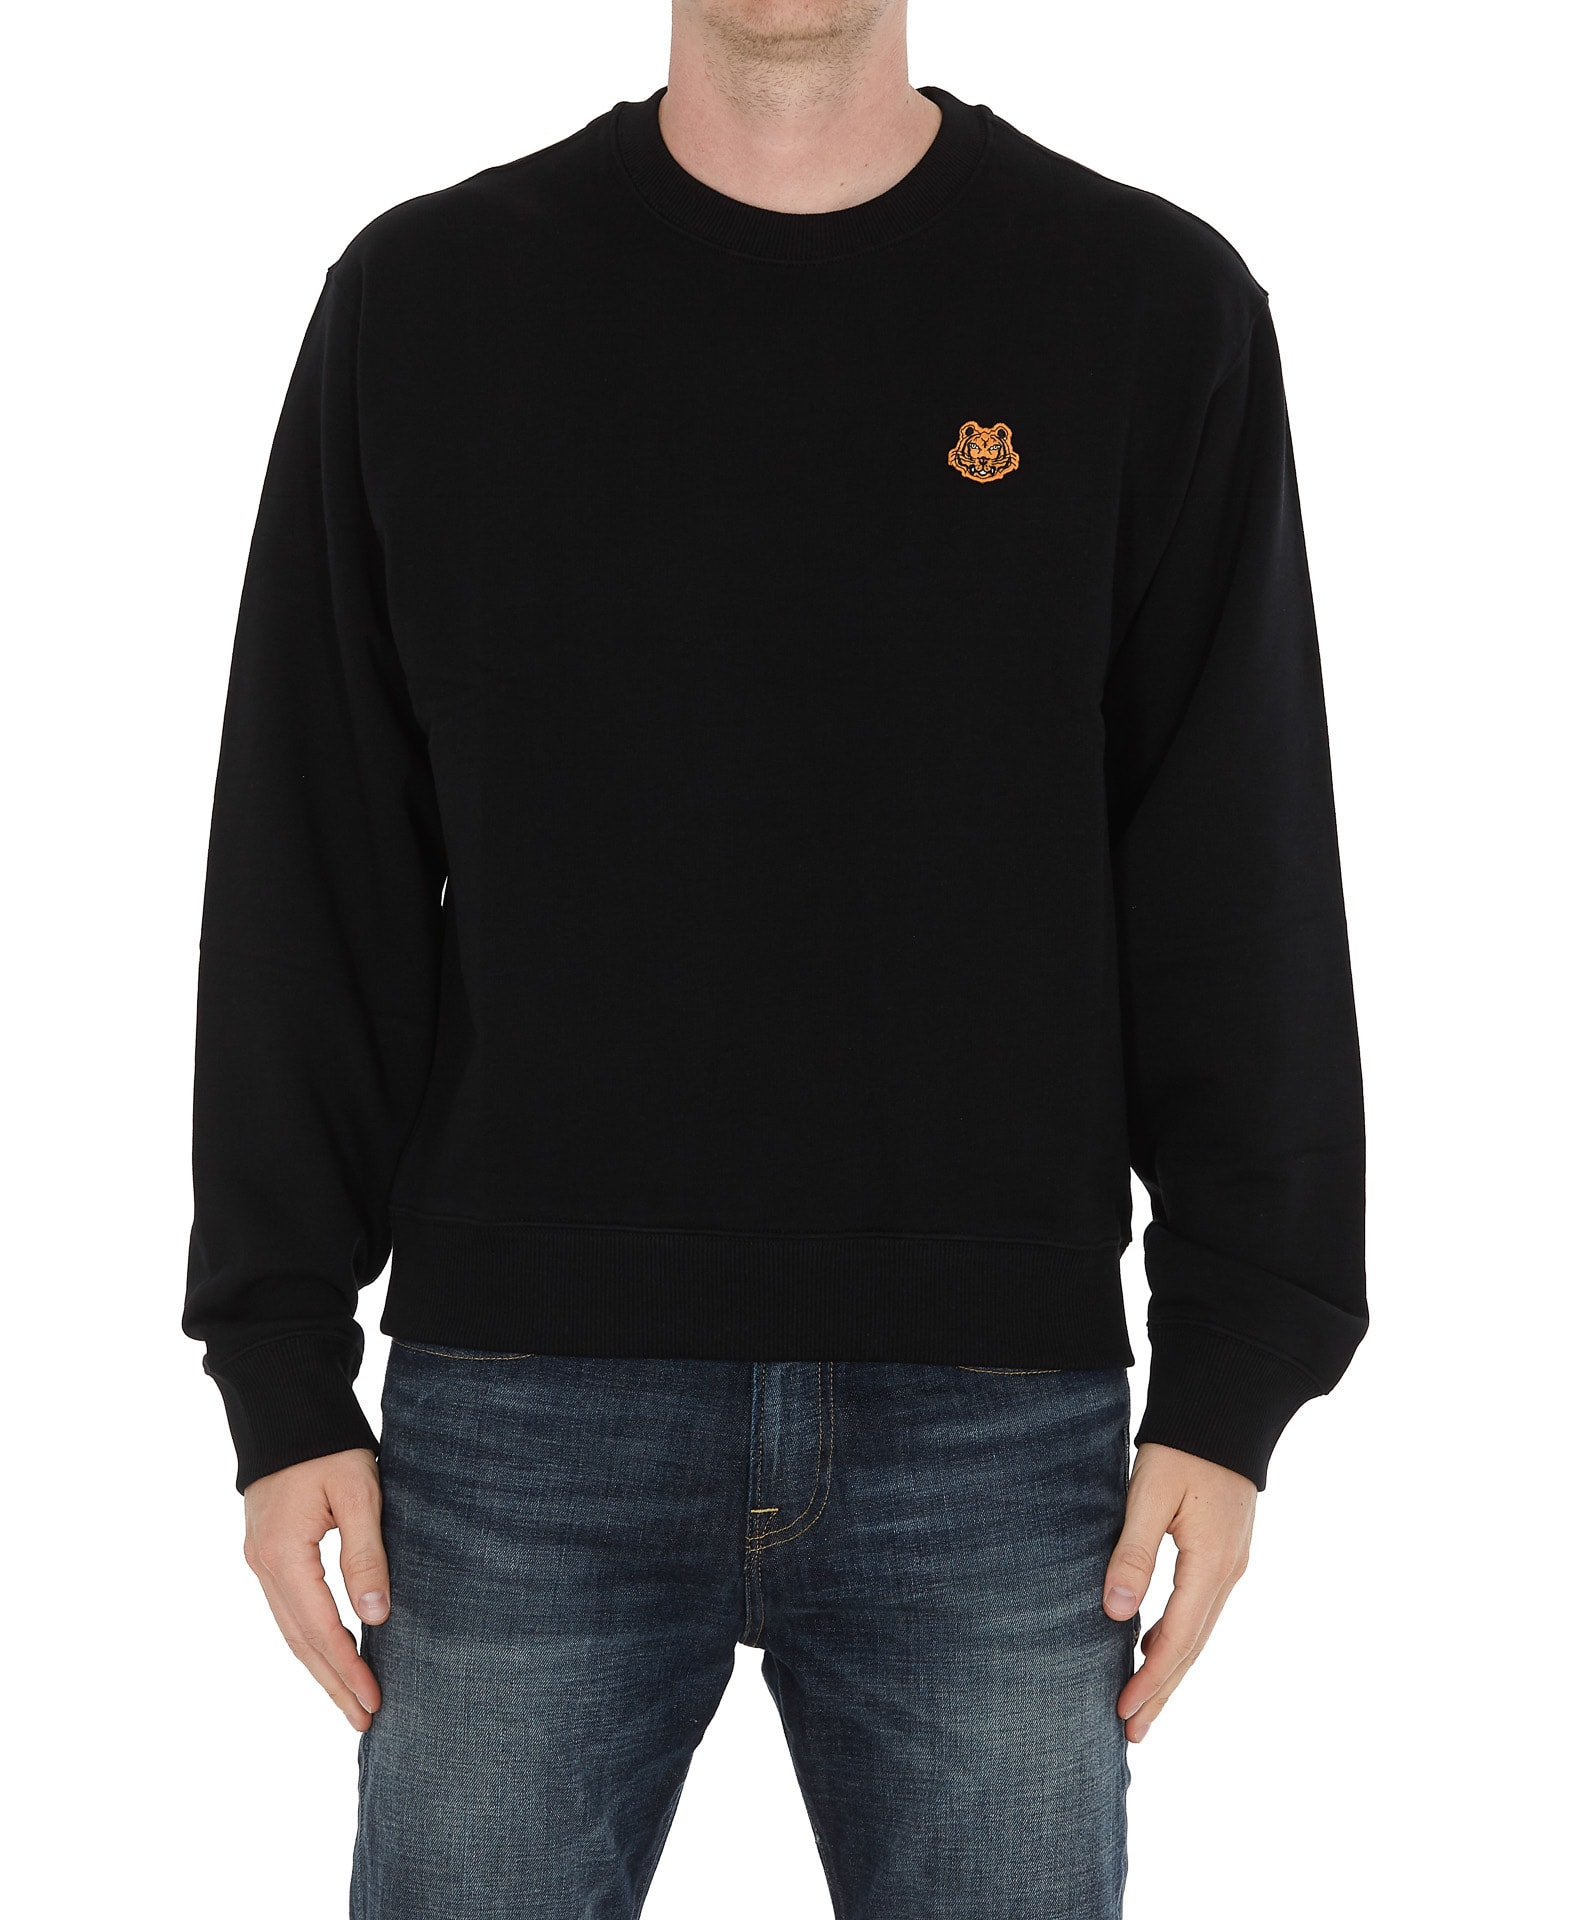 Tiger Crest Sweatshirt